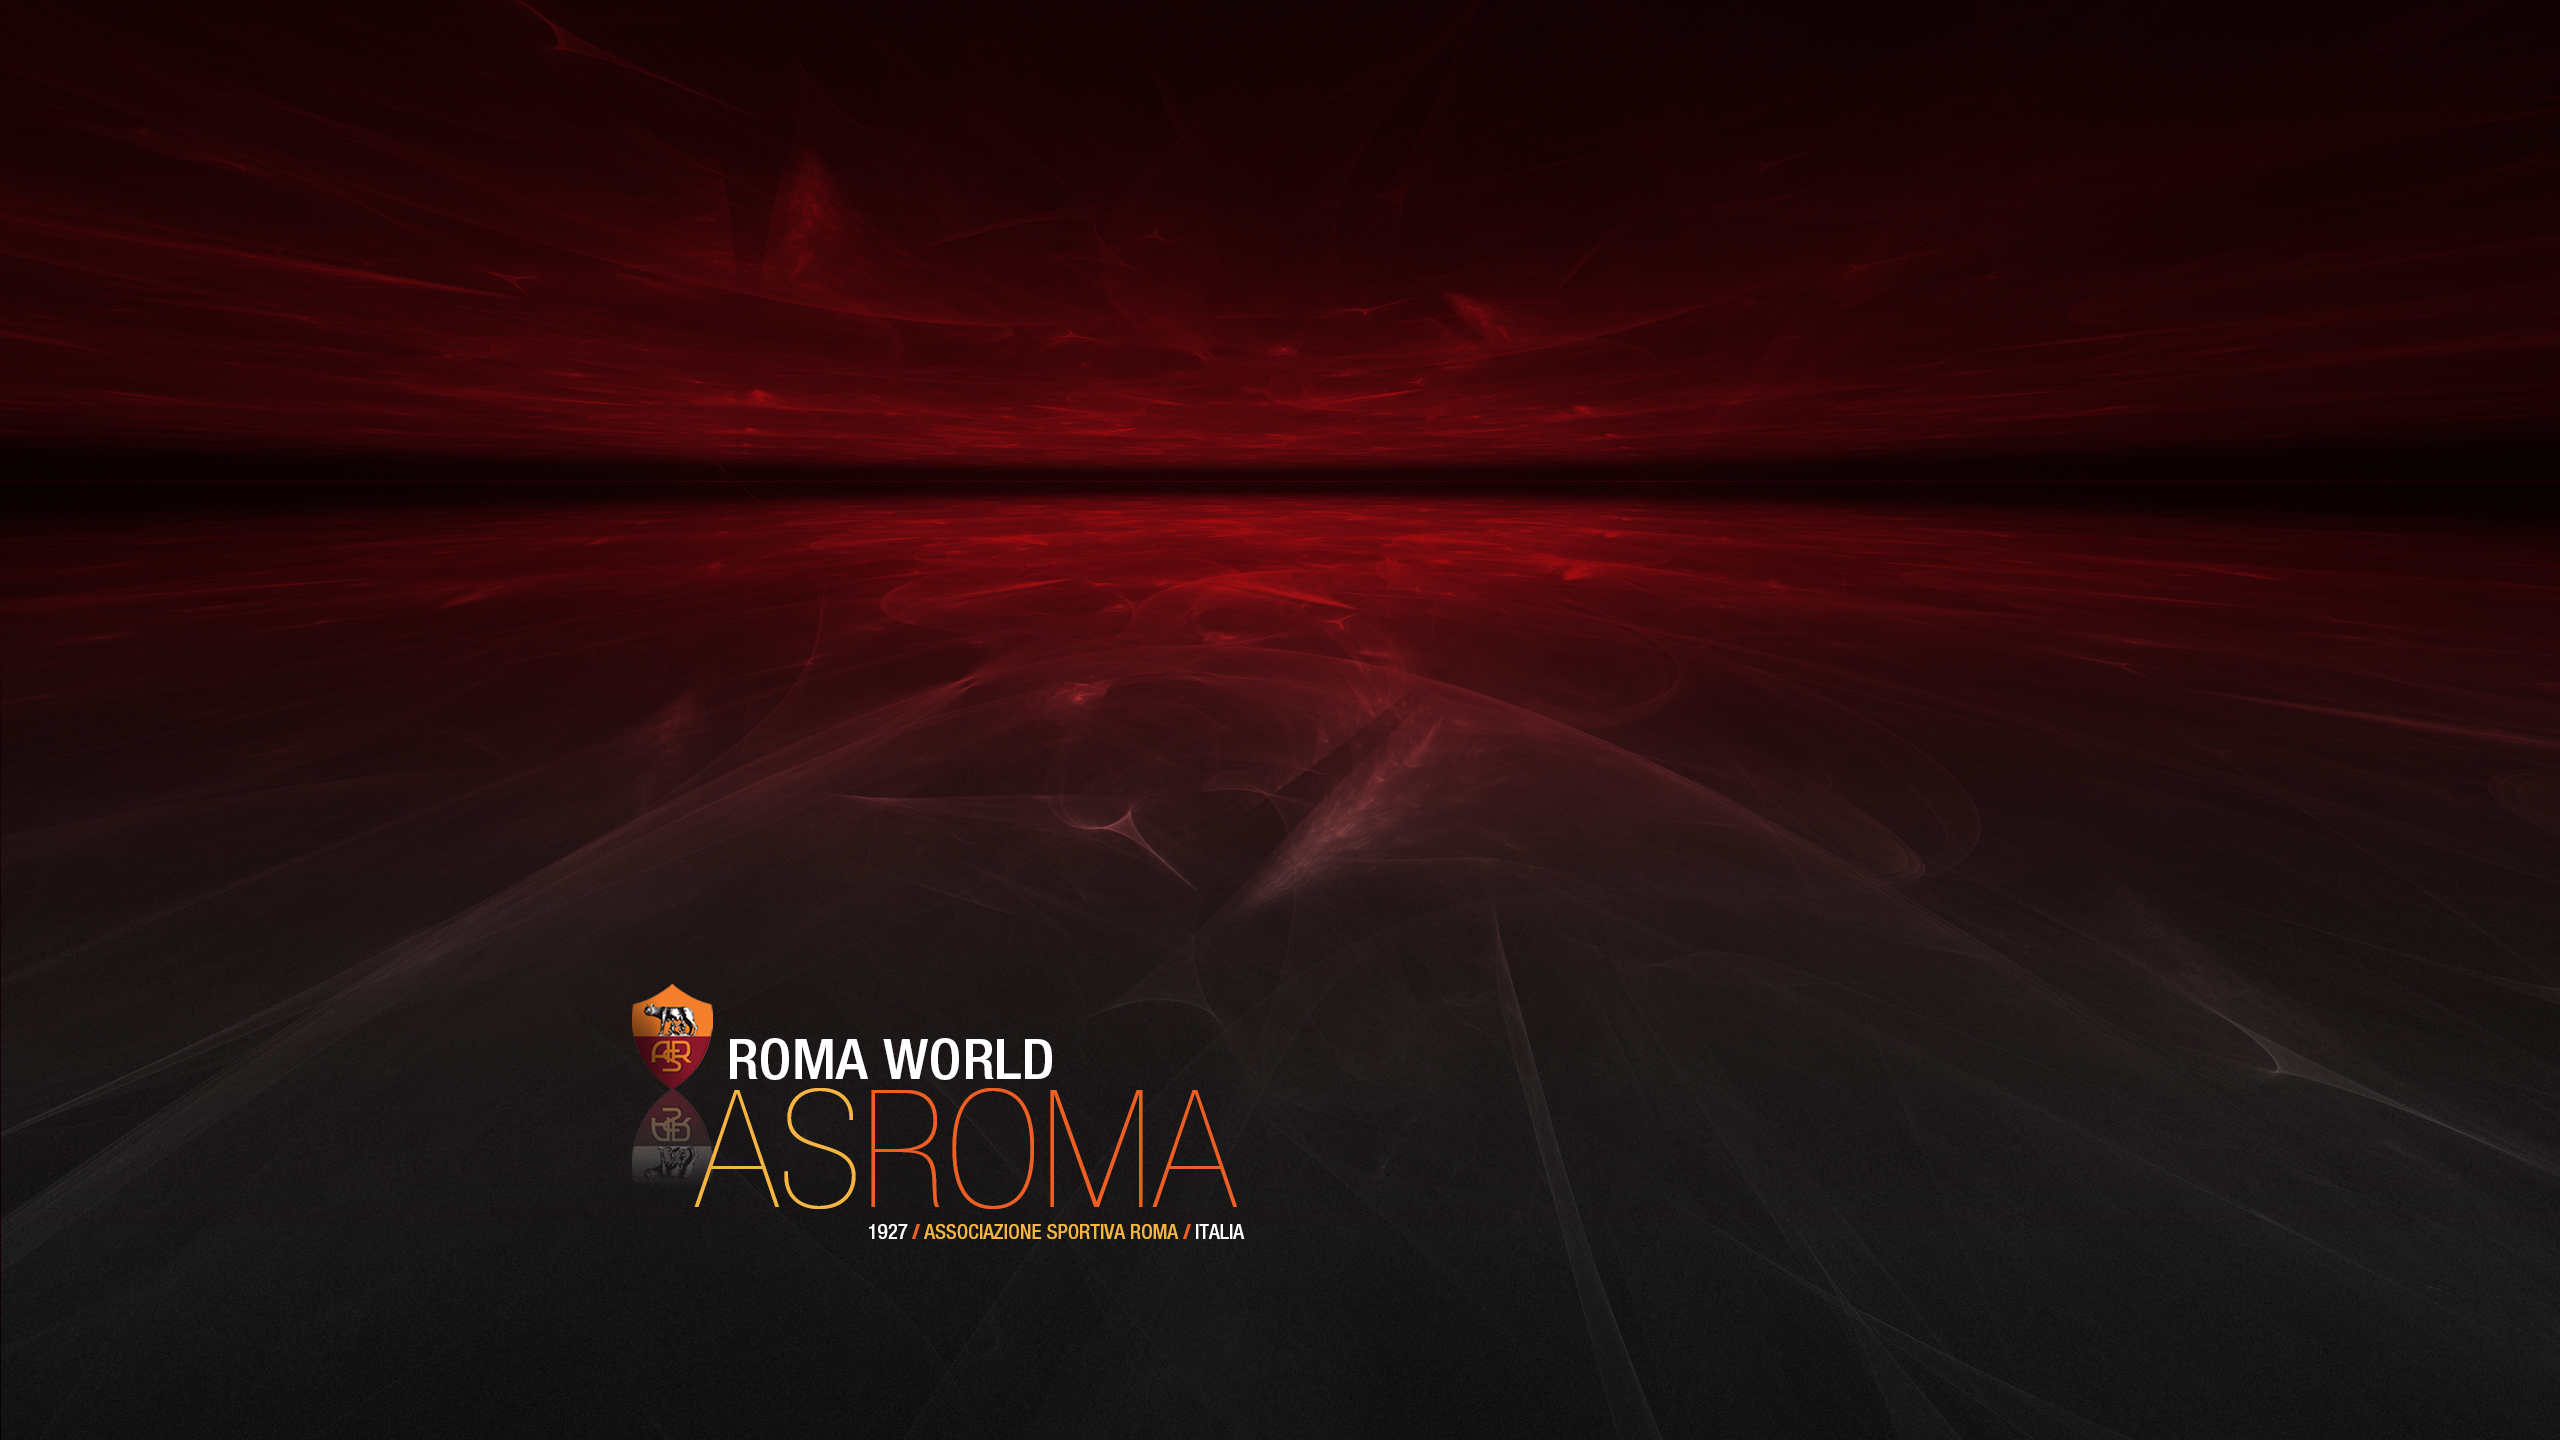 Roma World'- Wallpapers - Part 1 - Forza27